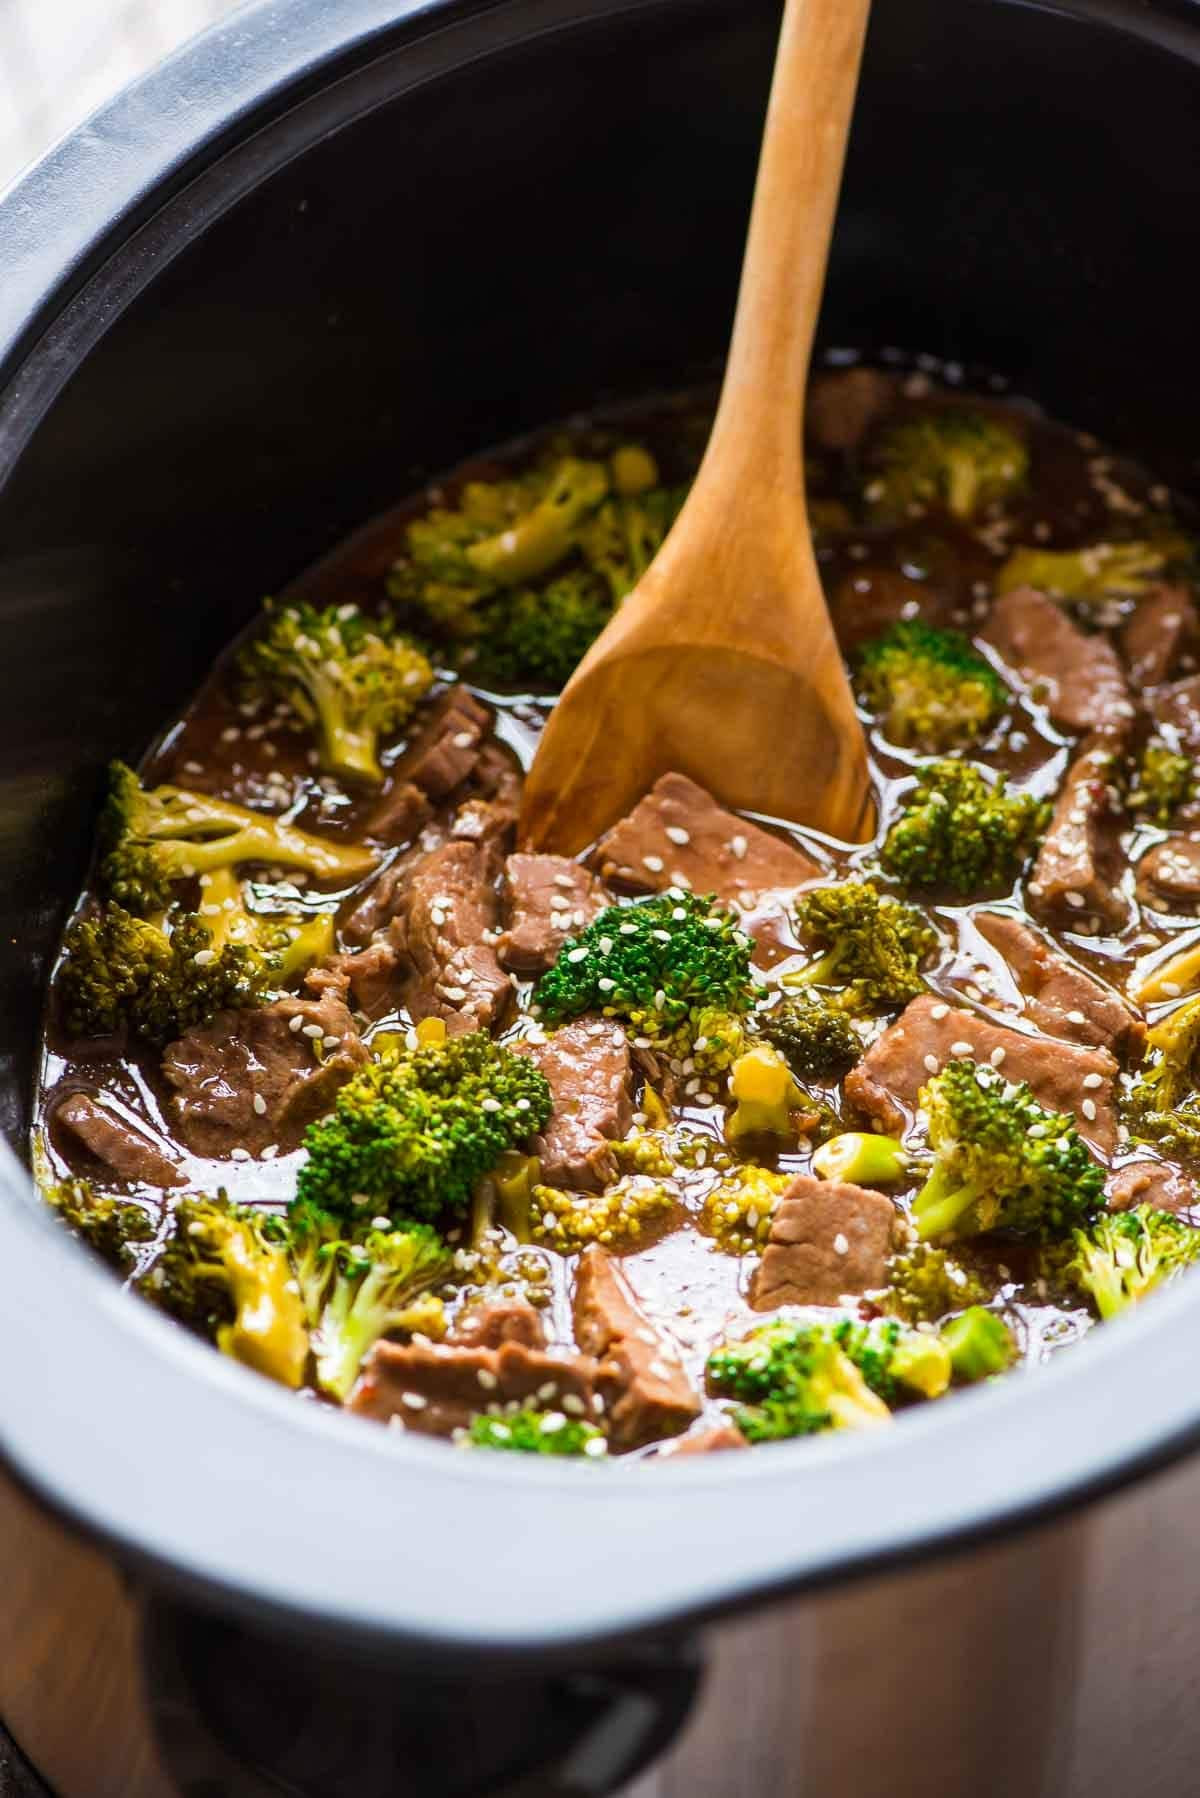 Healthy Slow Cooker Recipes Beef  Slow Cooker Beef and Broccoli